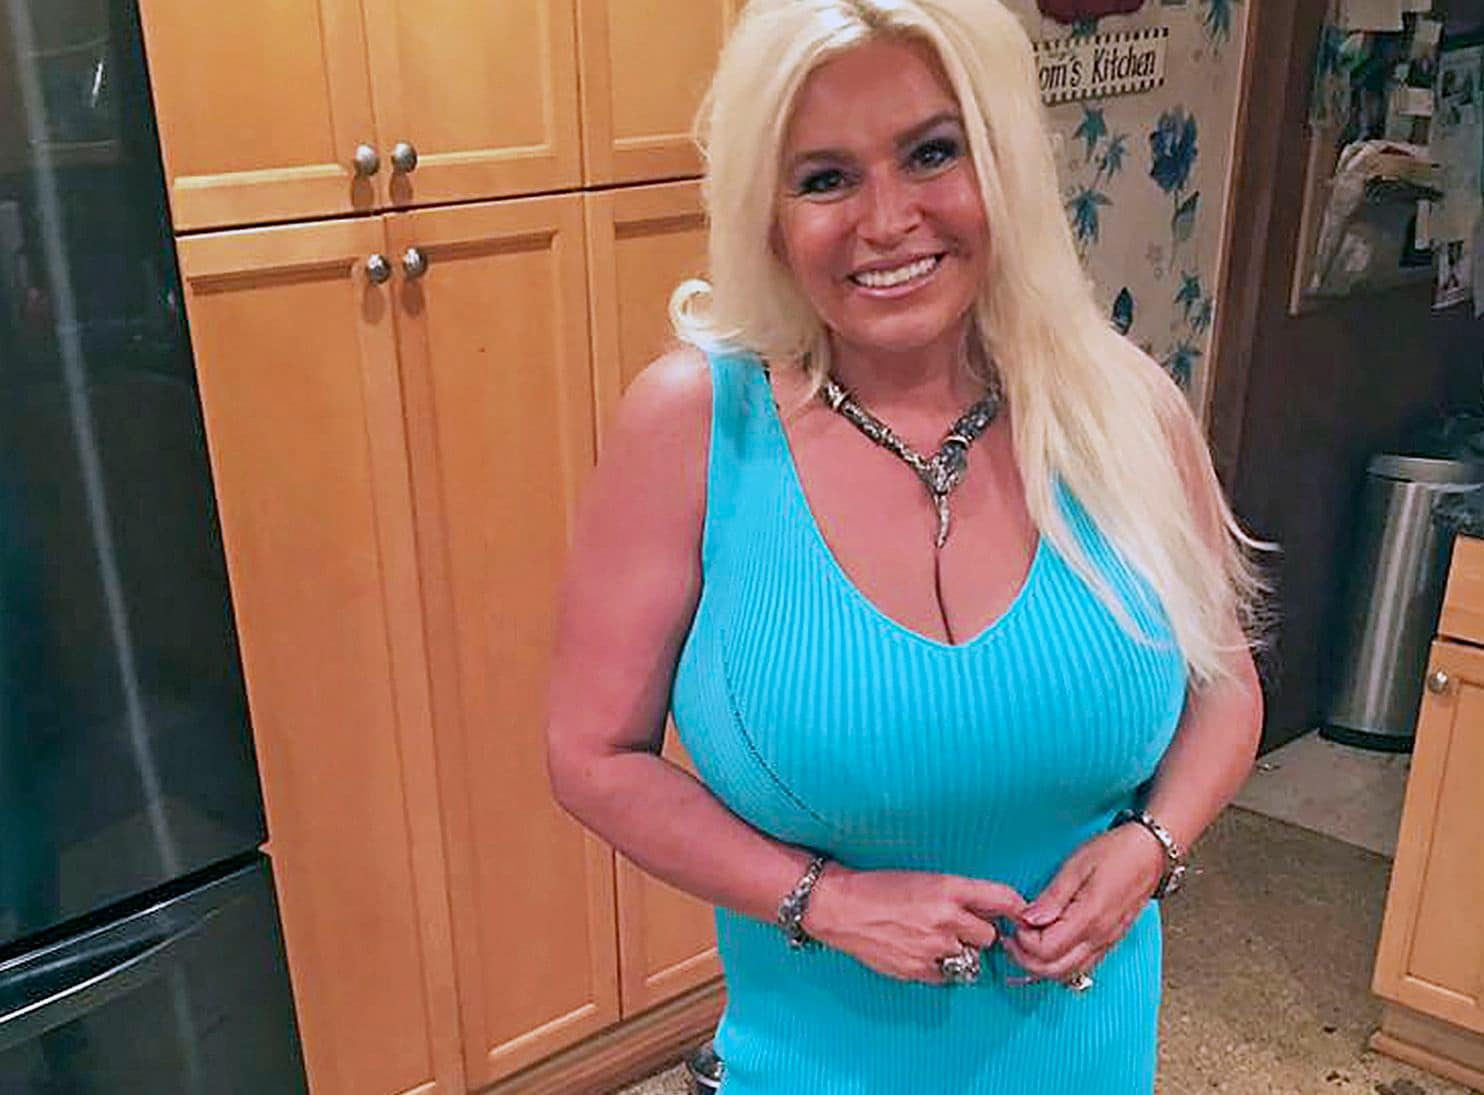 Dog The Bounty Hunter & Family Spread Beth Chapman's Ashes In Private Send-Off